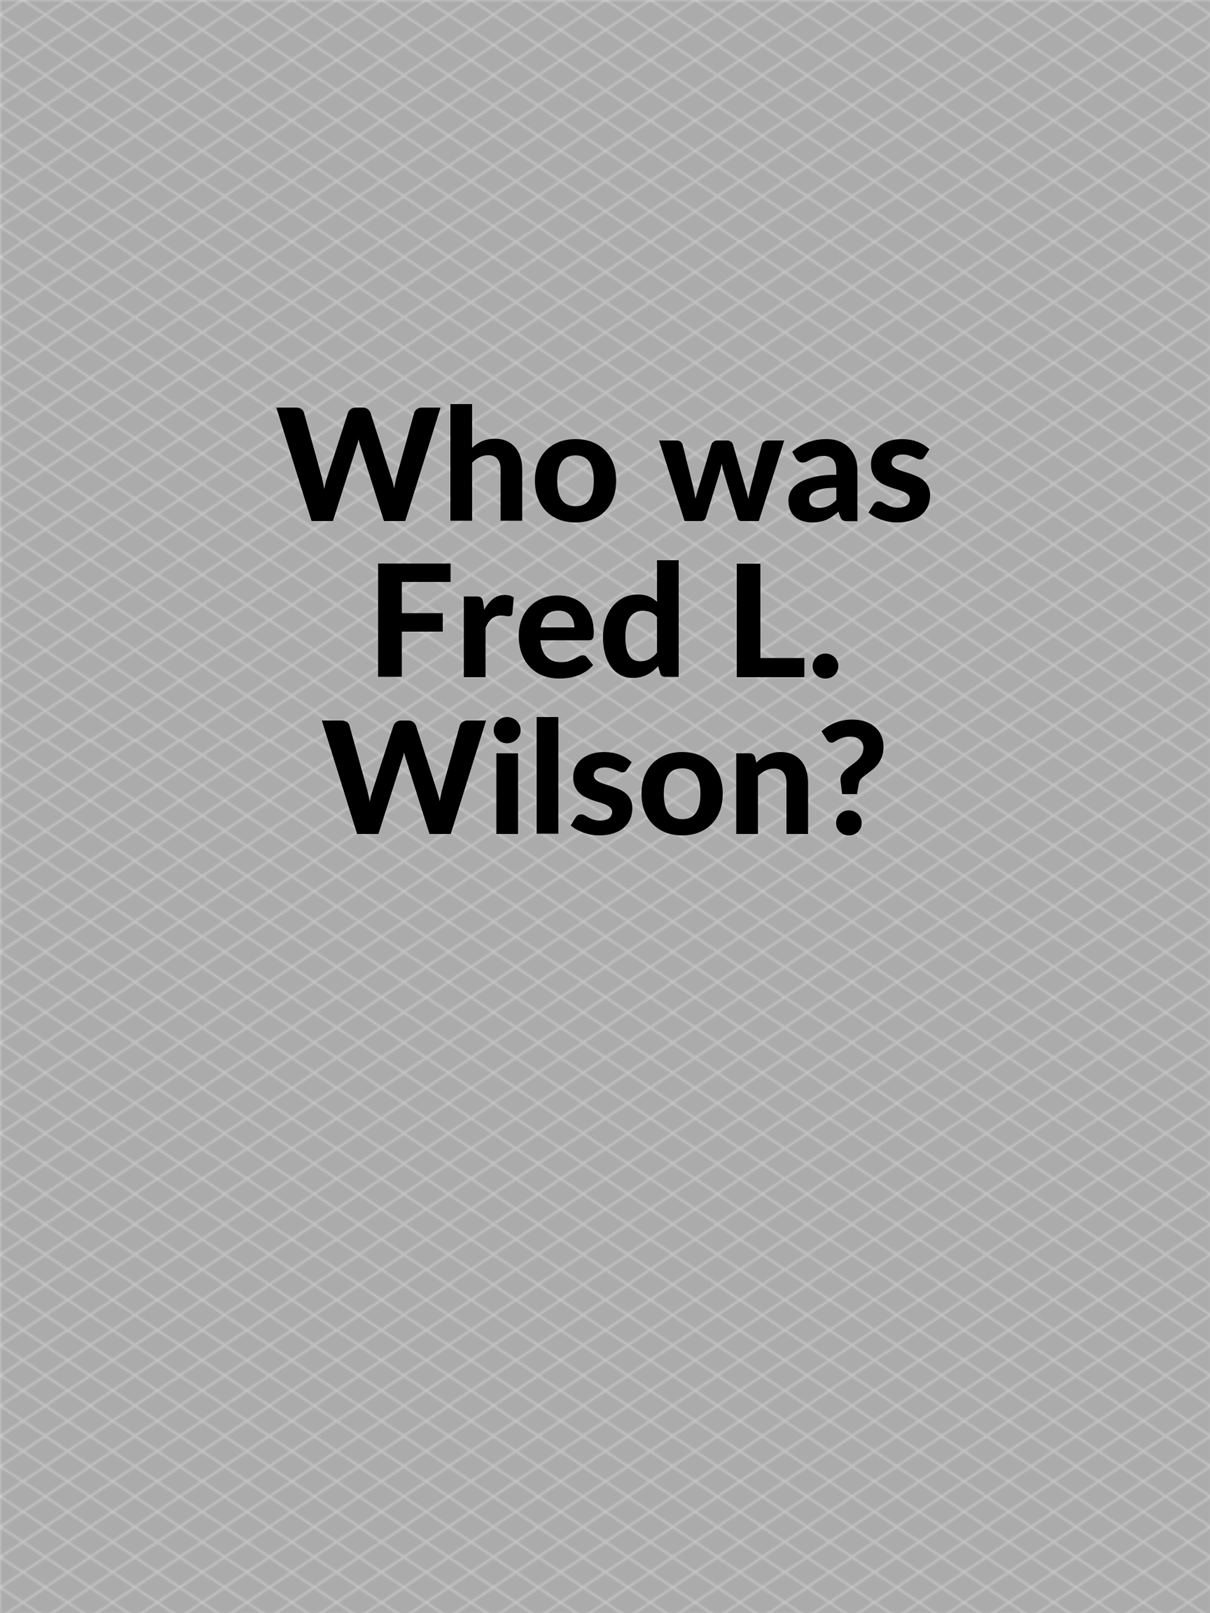 Who was Fred L. Wilson?